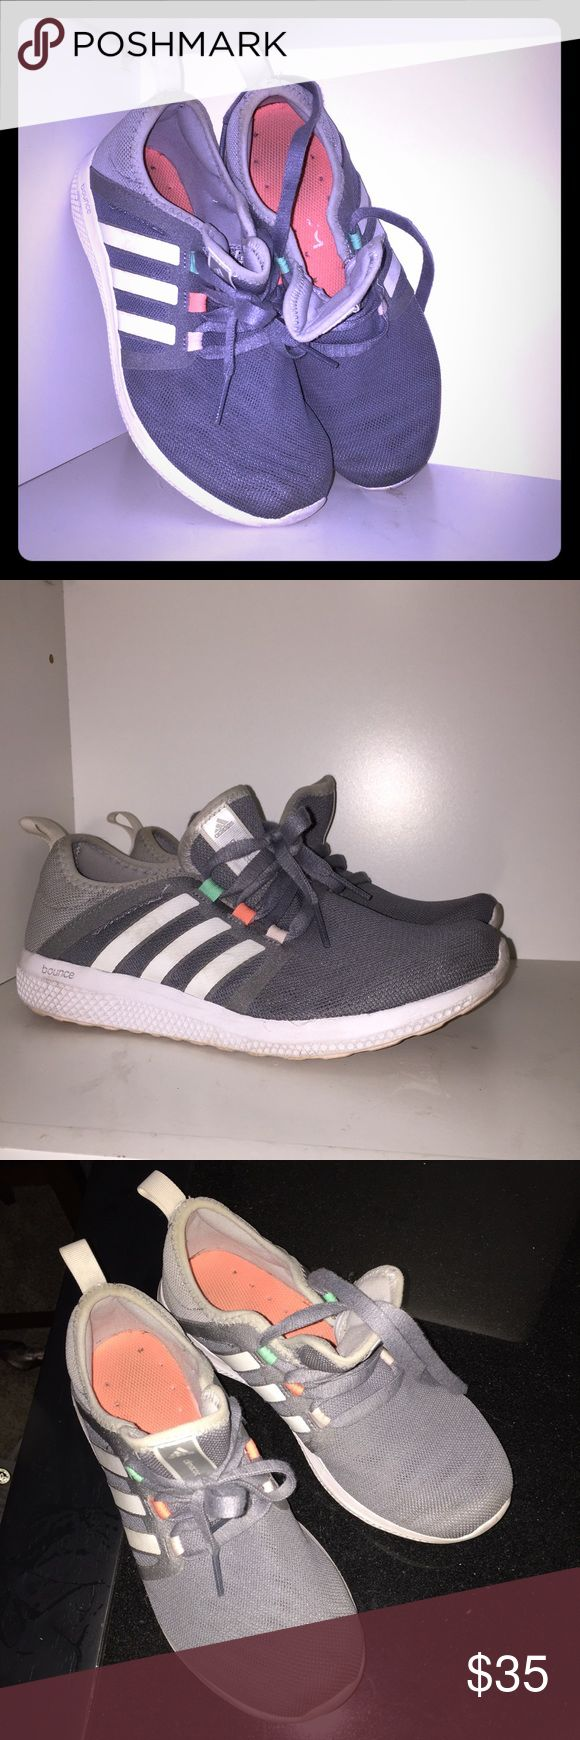 Adidas bounce women's 8 grey and white Worn so they show a bit of dirt, but overall great condition still :) super cute and comfortable with iridescent and reflective material on the sides for better visibility! Climacool technology adidas Shoes Athletic Shoes